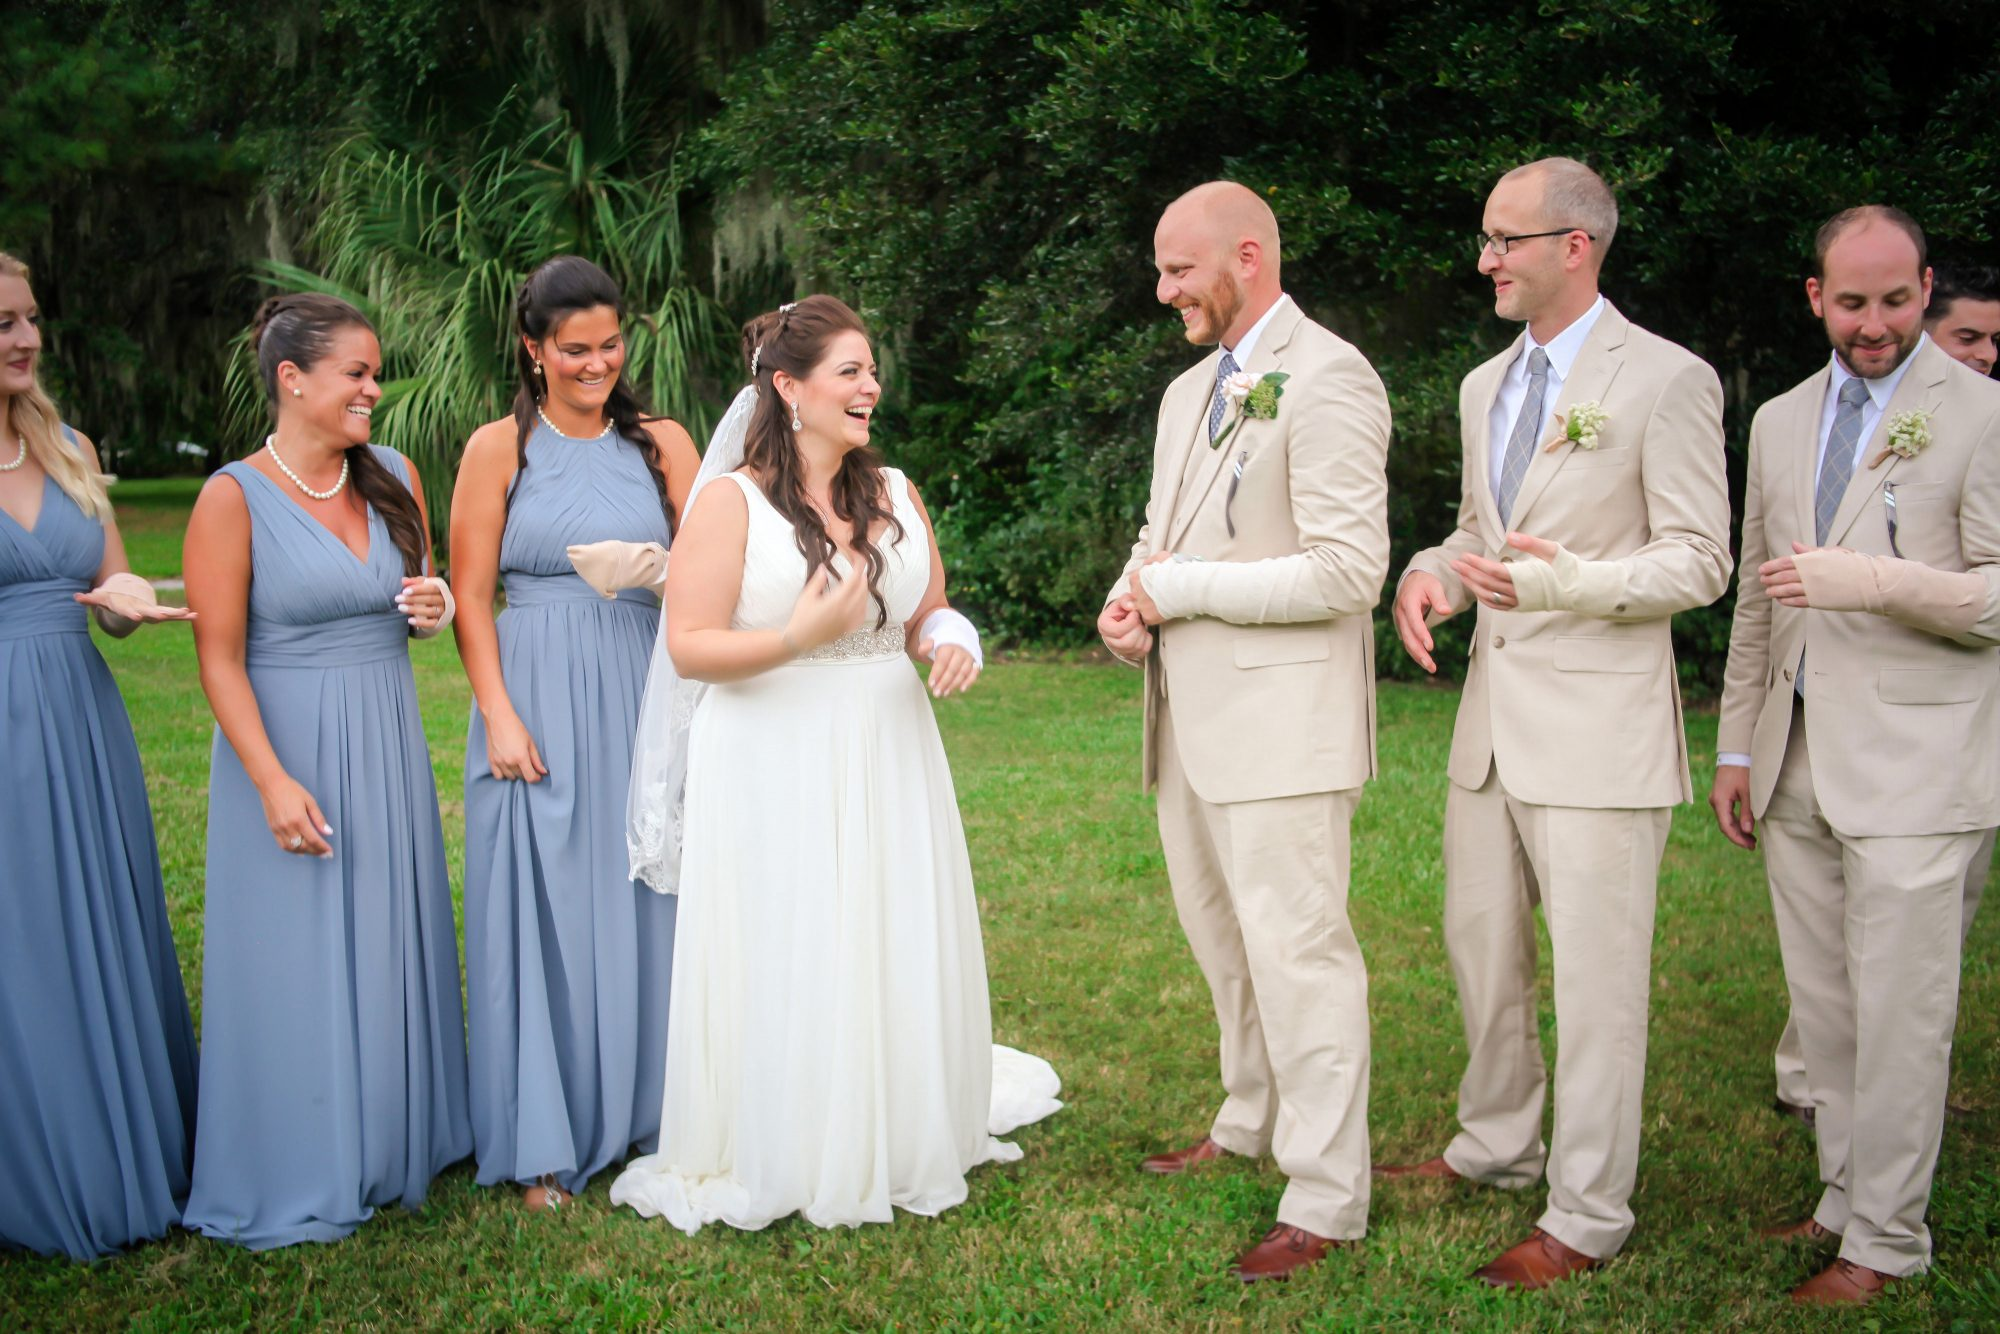 Summers Bridesmaids and Groomsmen Wearing Bandages